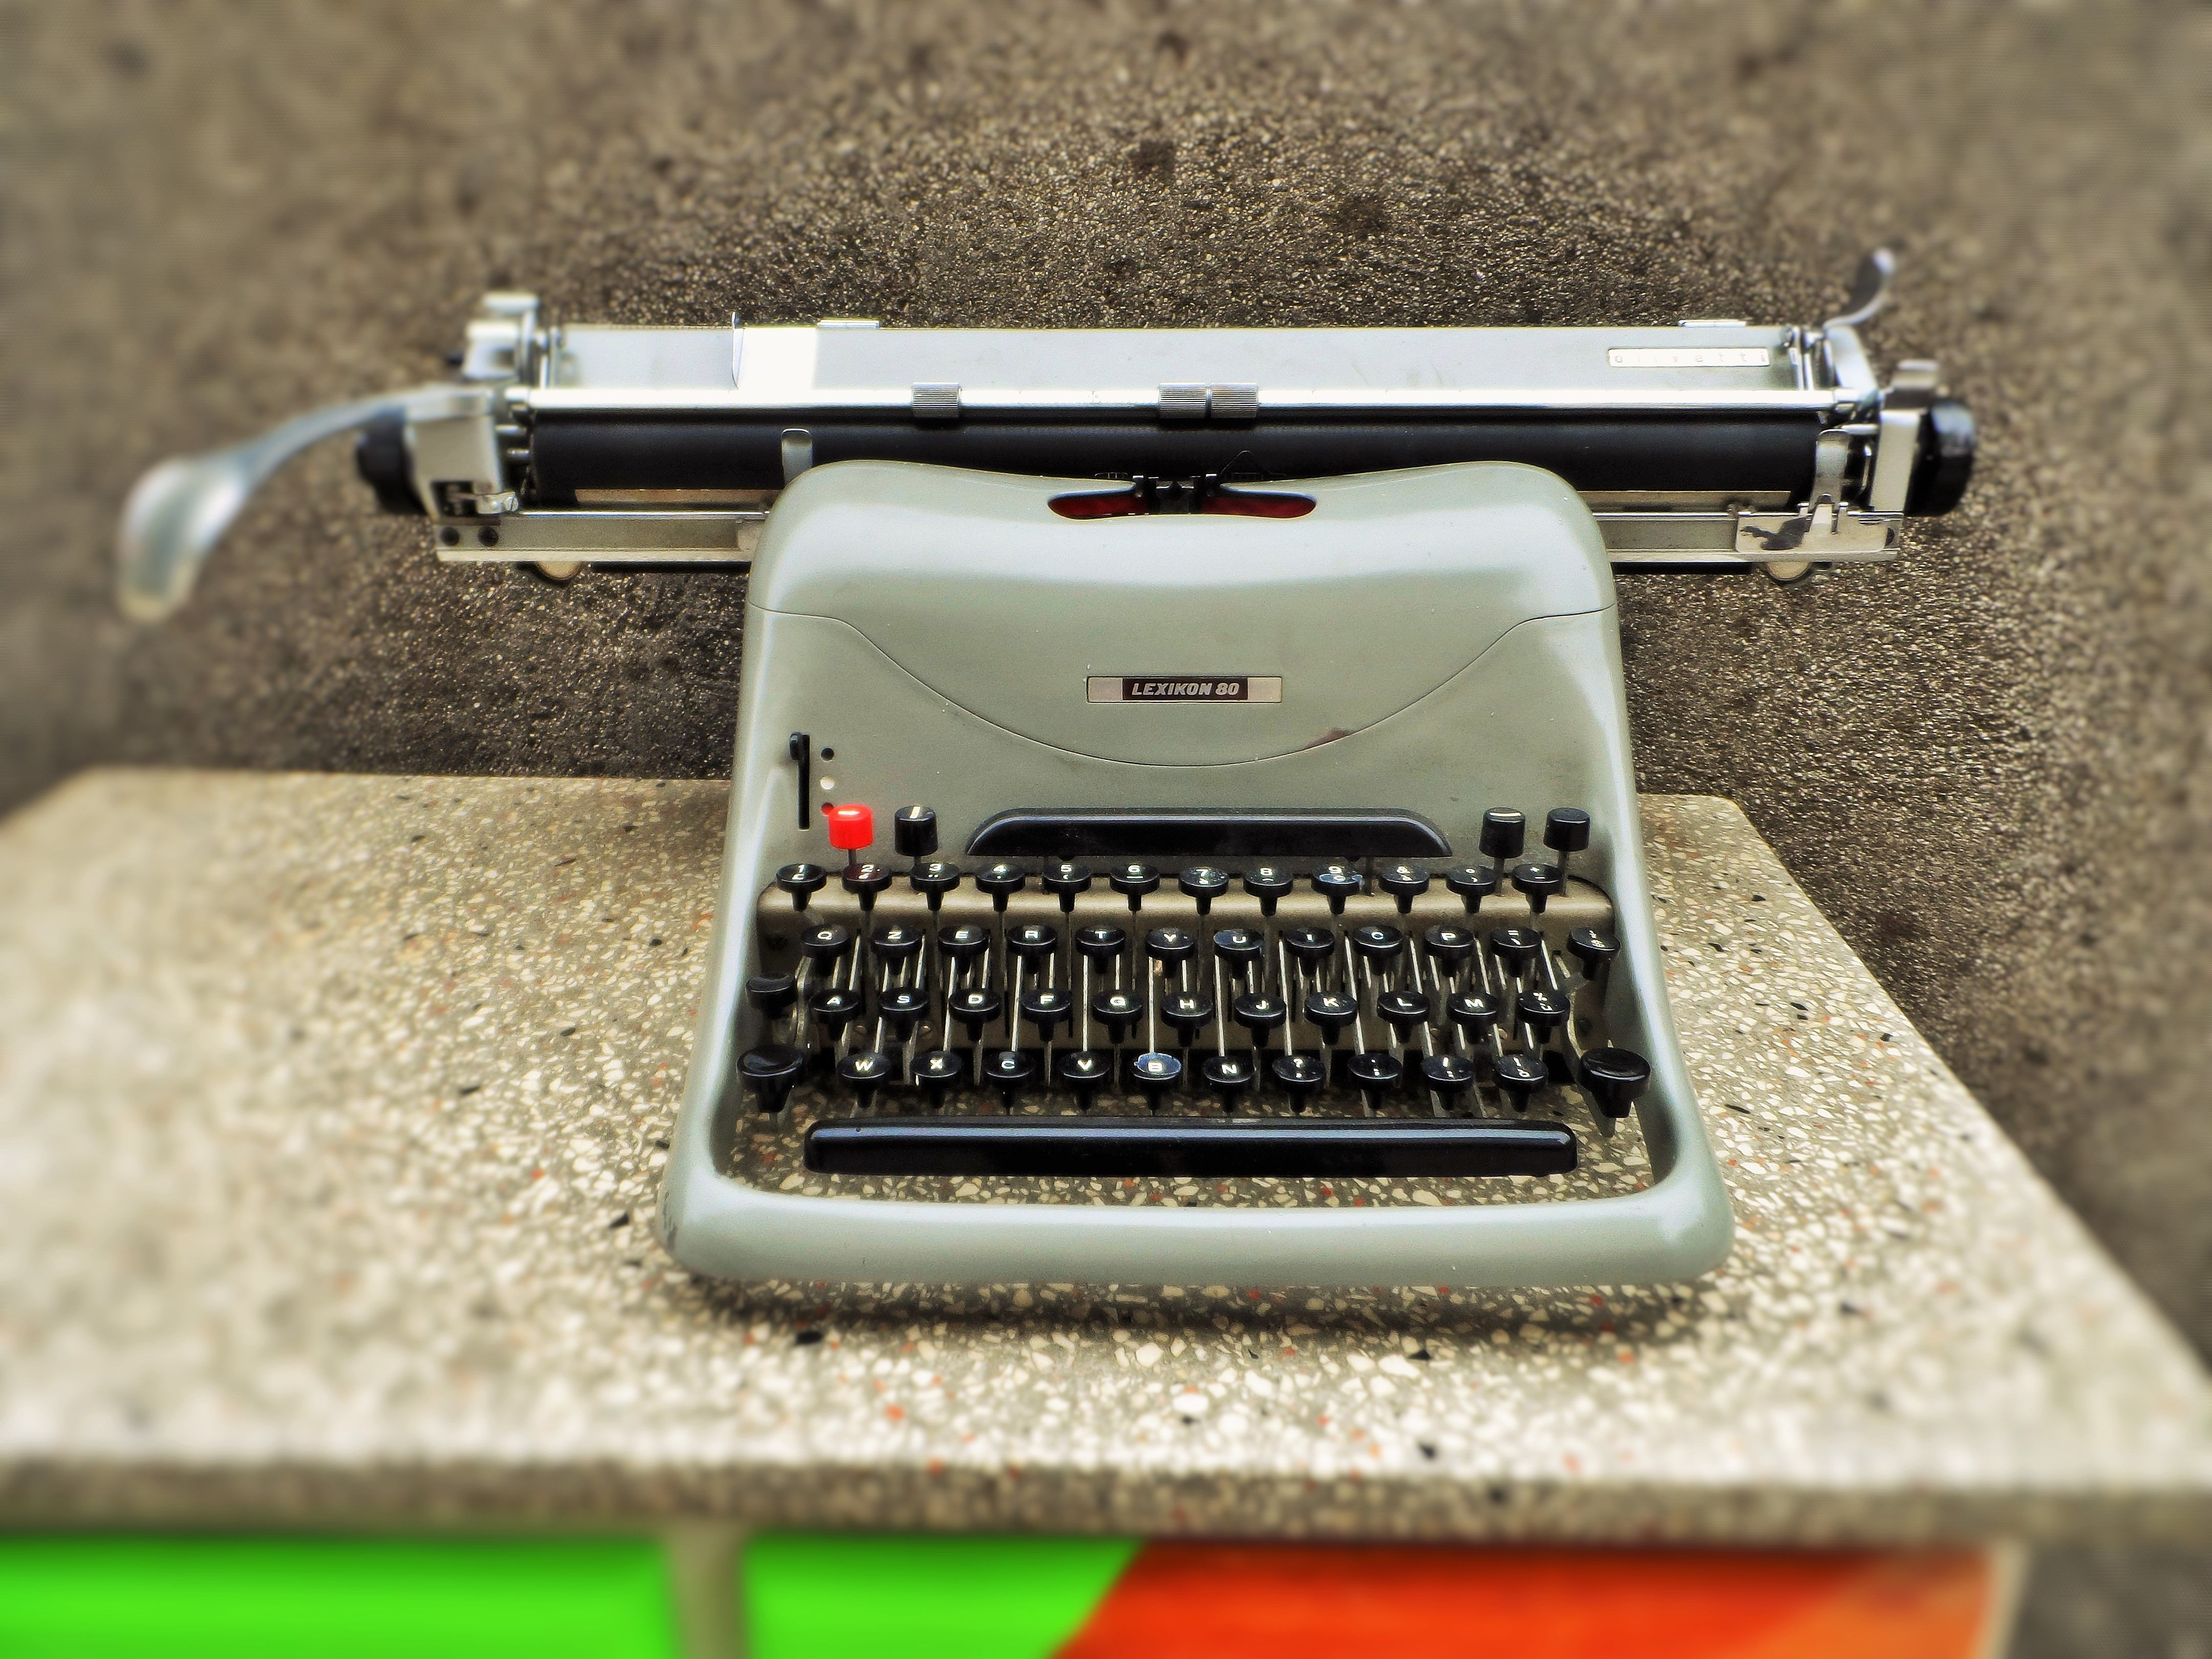 Olivetti Lexicon 80 #old #vintage #objects #writingmachine